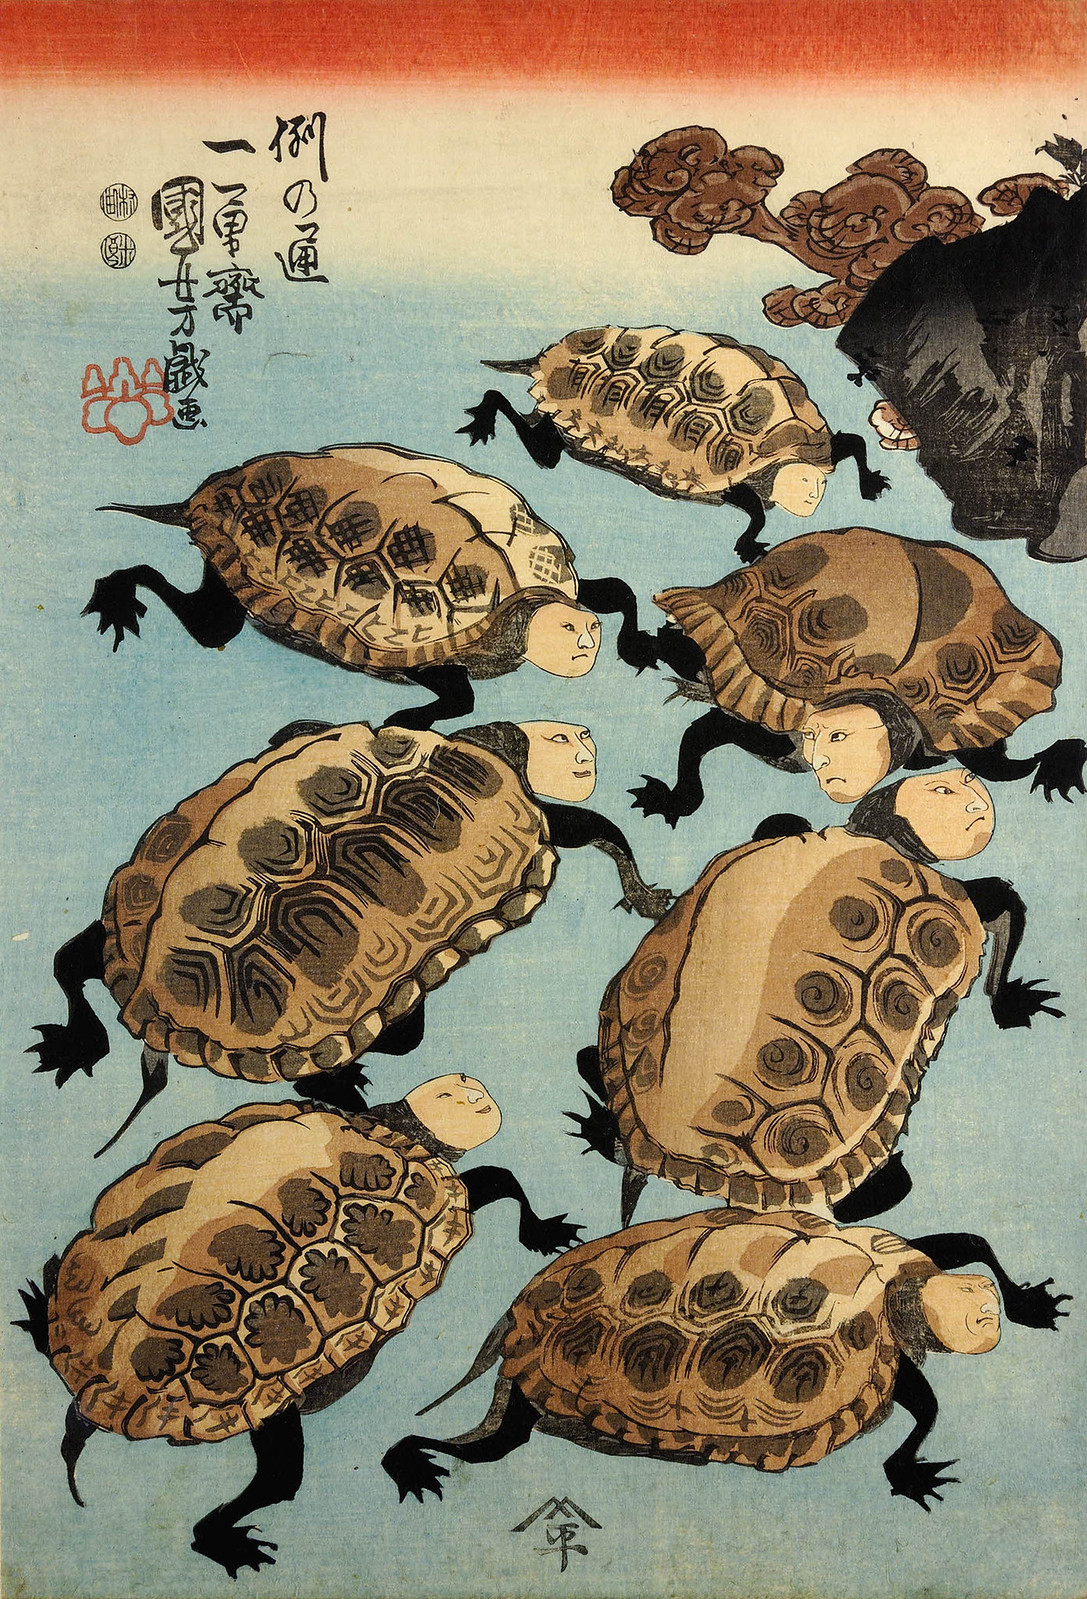 Utagawa Kuniyoshi - Ki-ki myo-myo (Strange and Marvelous Turtles of Happiness) 1847-52 (left panel)